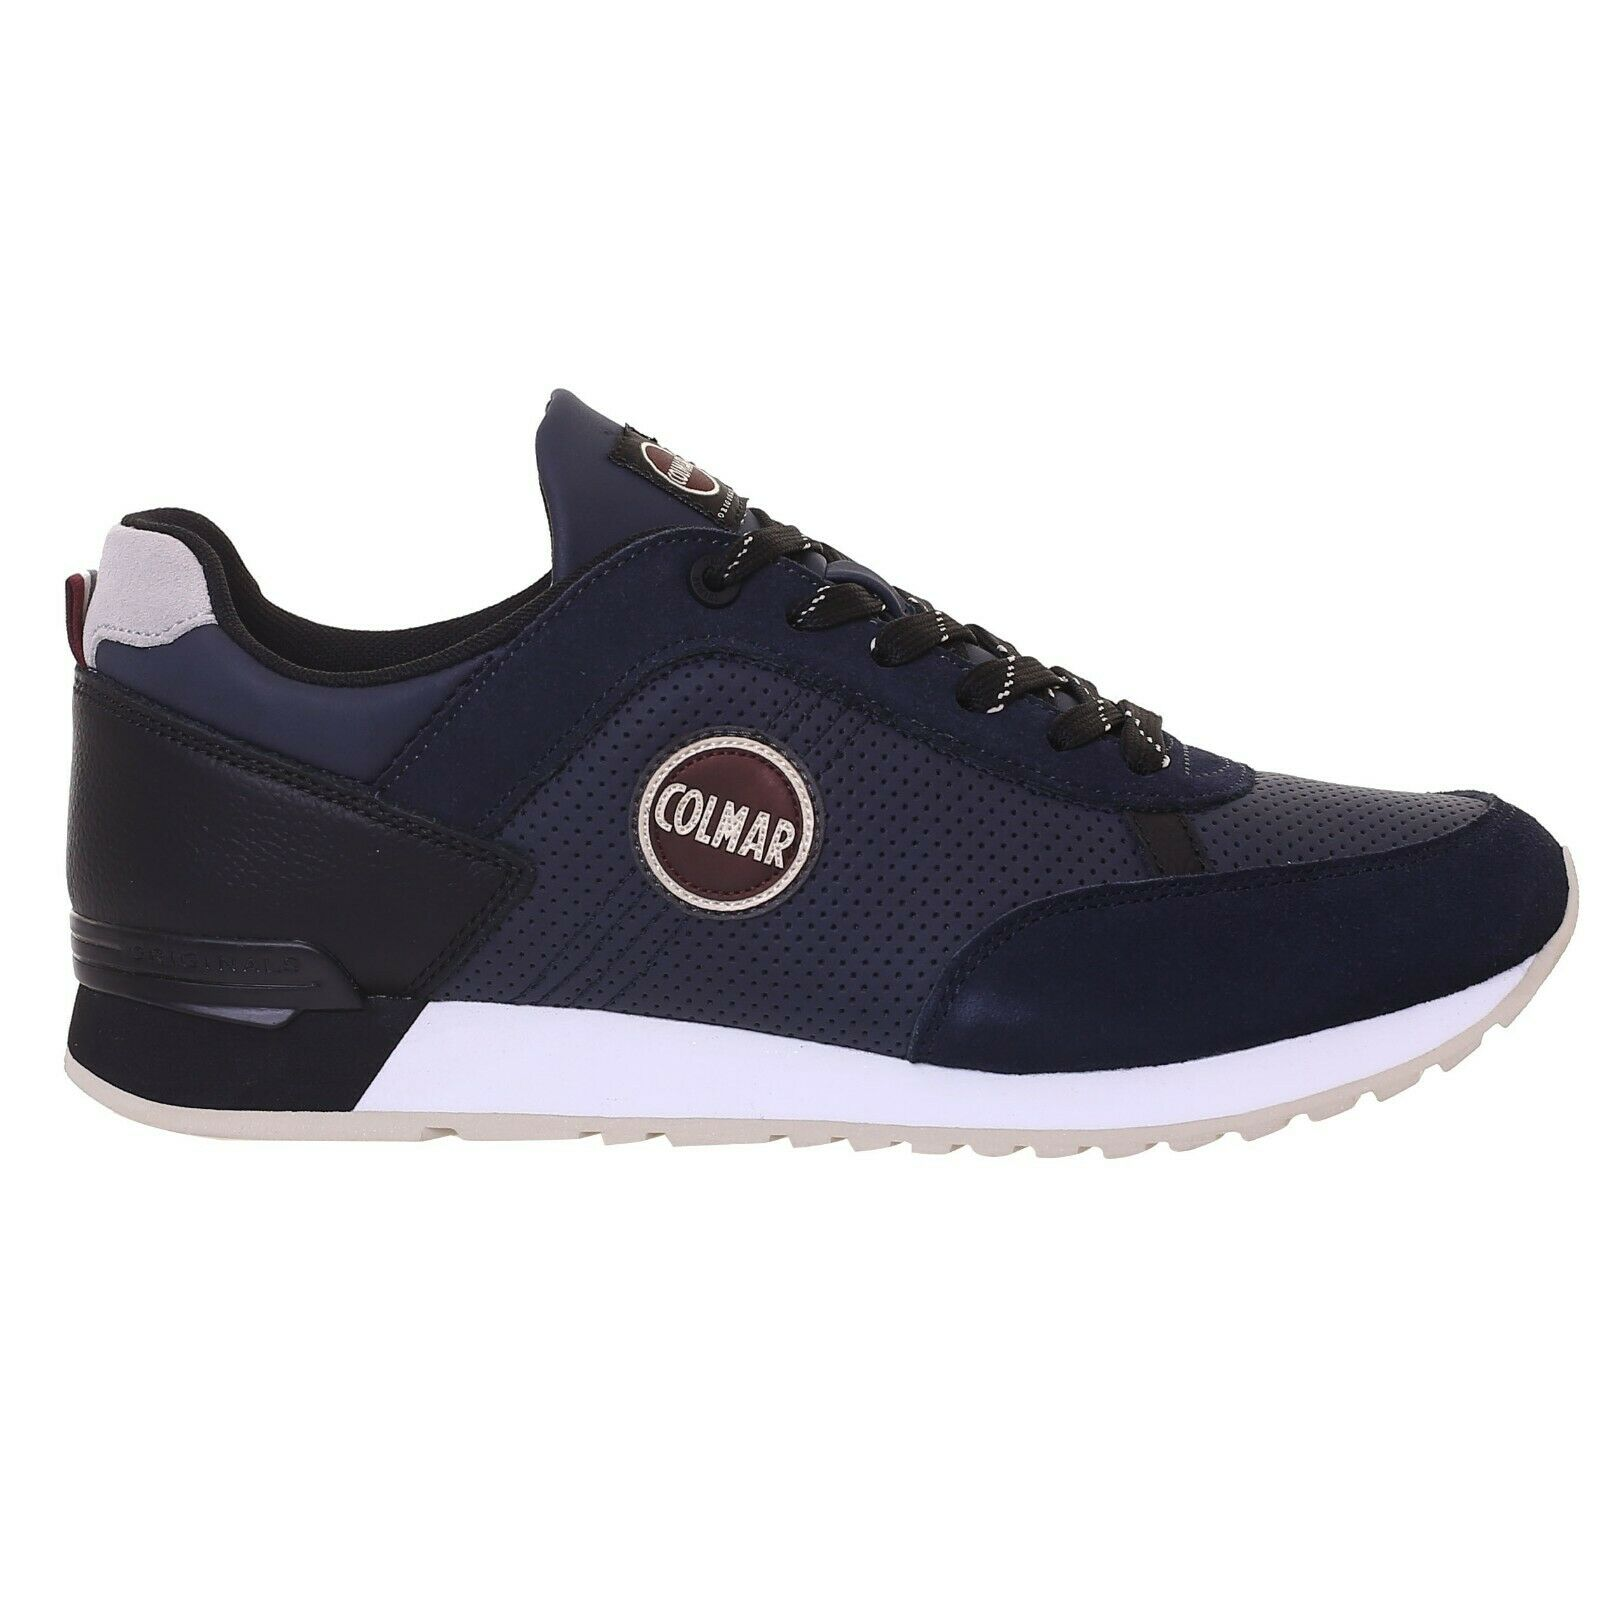 SCARPE SNEAKERS UOMO COLMAR ORIGINALE TRAVIS DRILL RILL 01 PELLE A/I 2018/19 NEW